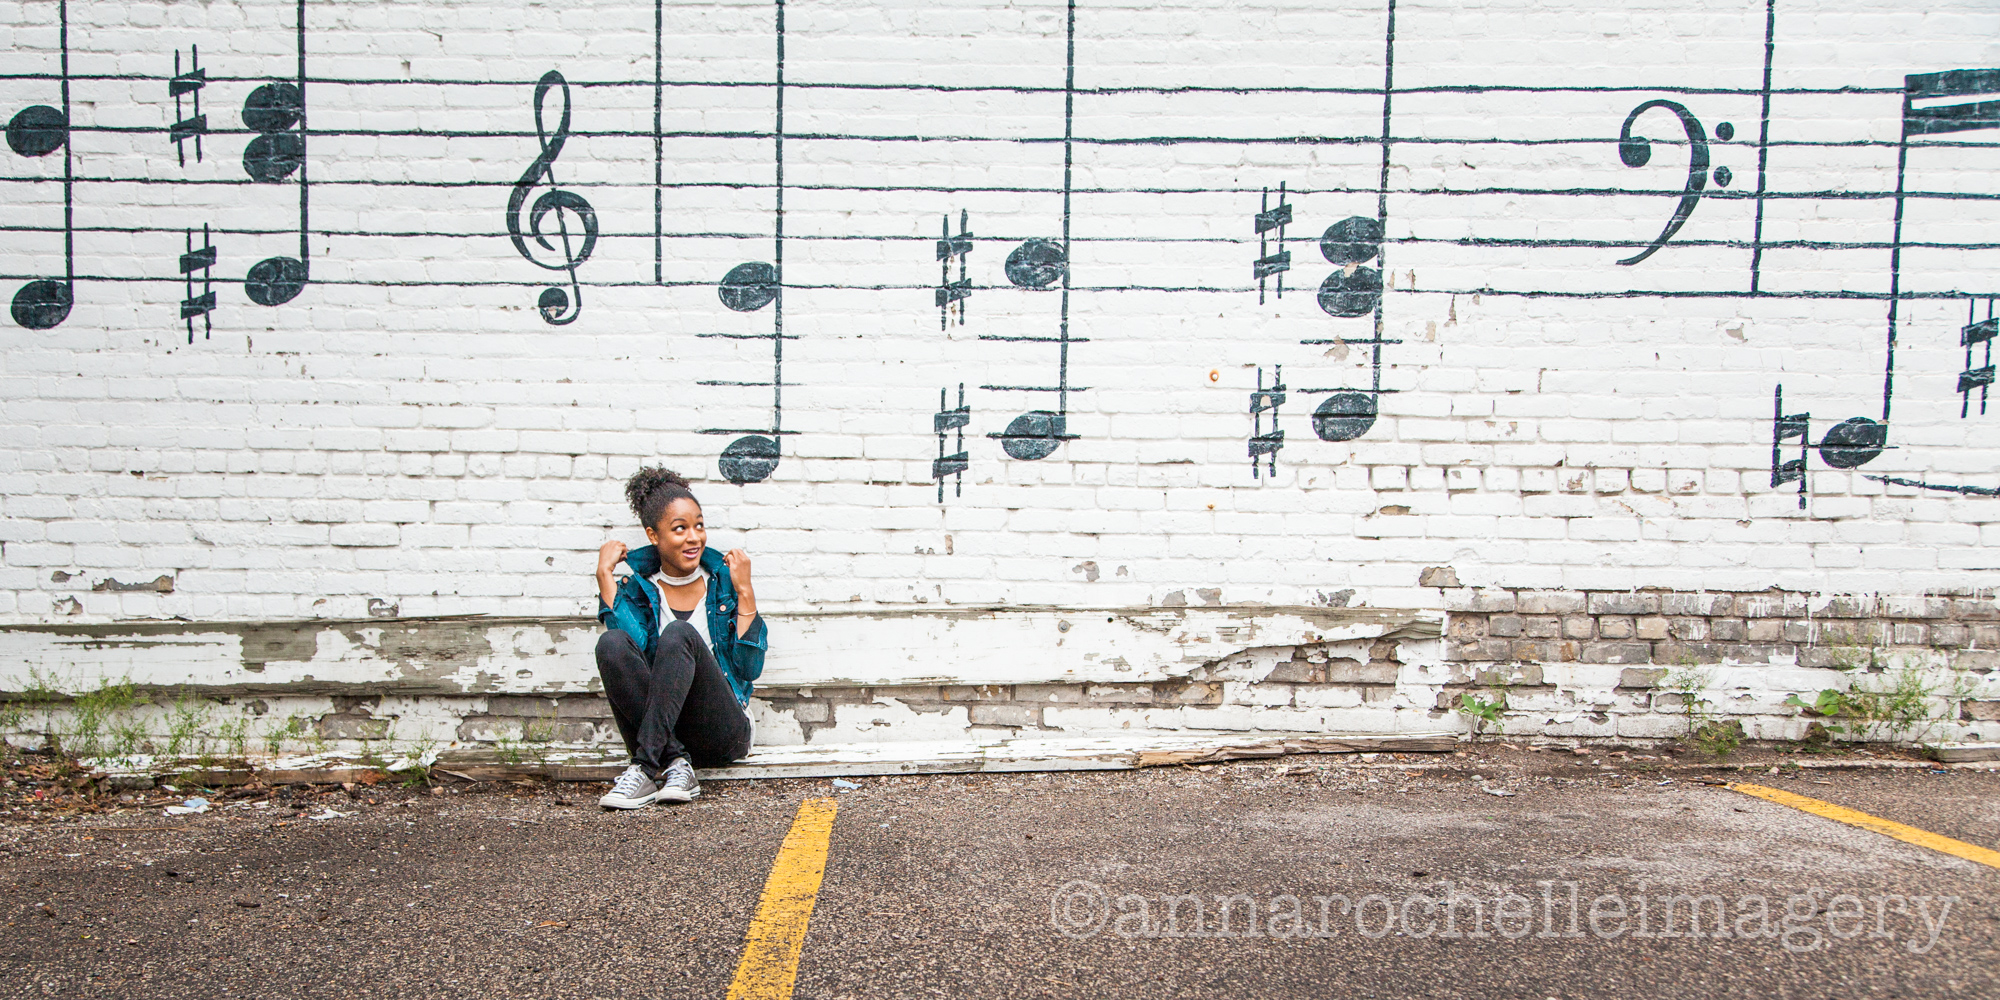 Minnesota-music-mural-portraits-prince-rainyday-seniors-creatives-anna rochelle imagery-4.jpg